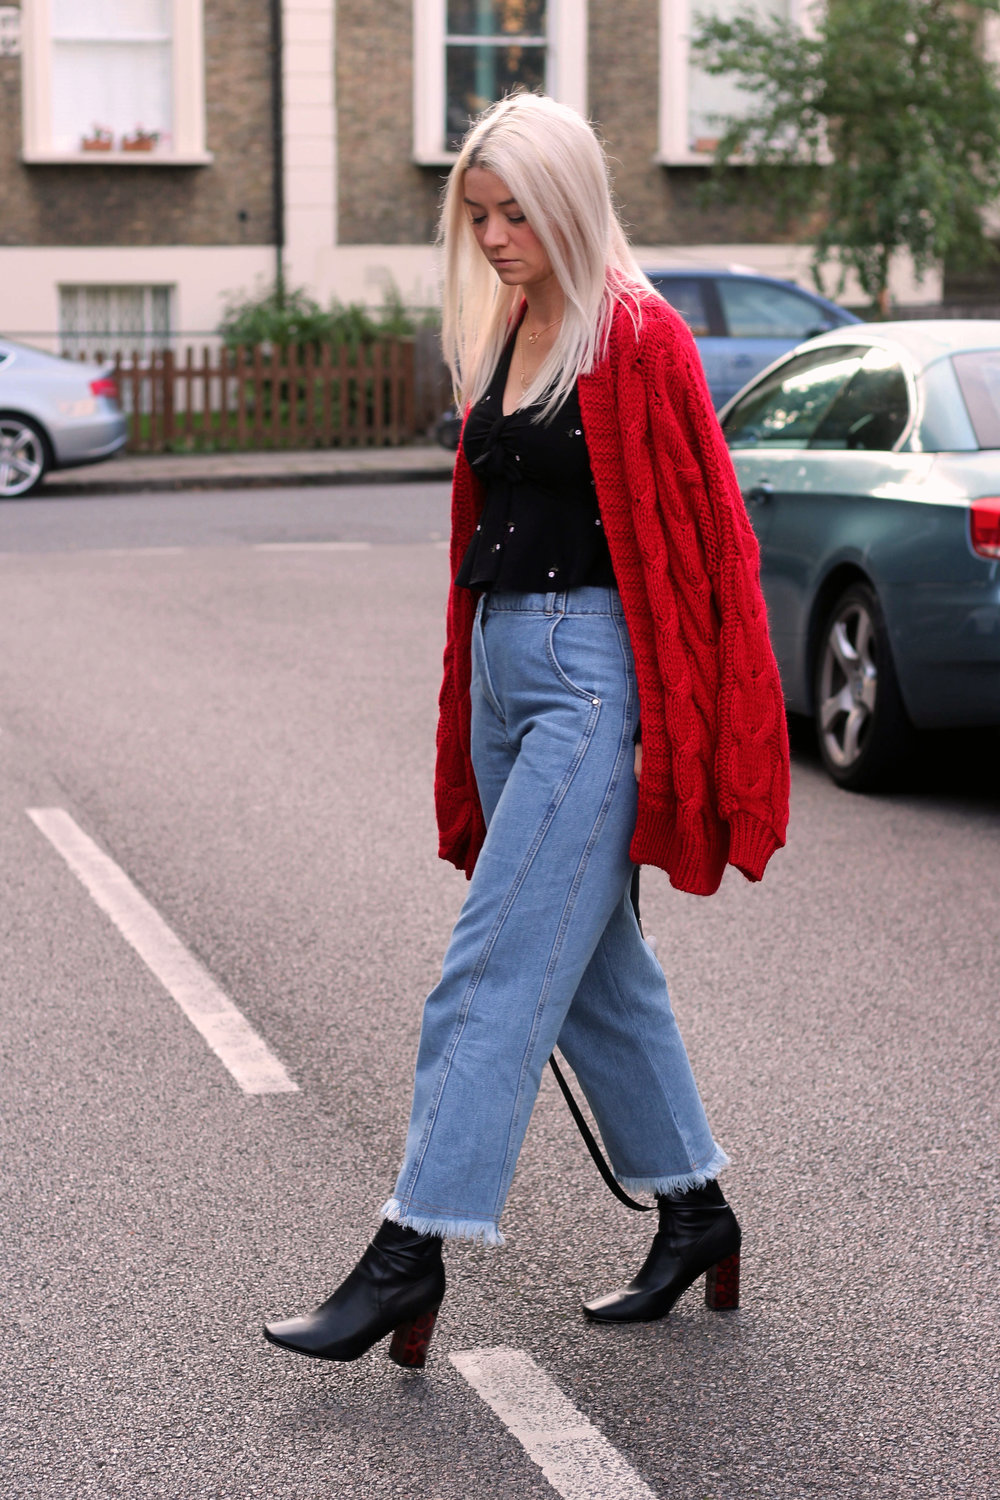 topshop jeans, next red cardigan, tie front ruffle top, ego boots, northern magpie, joey taylor 1